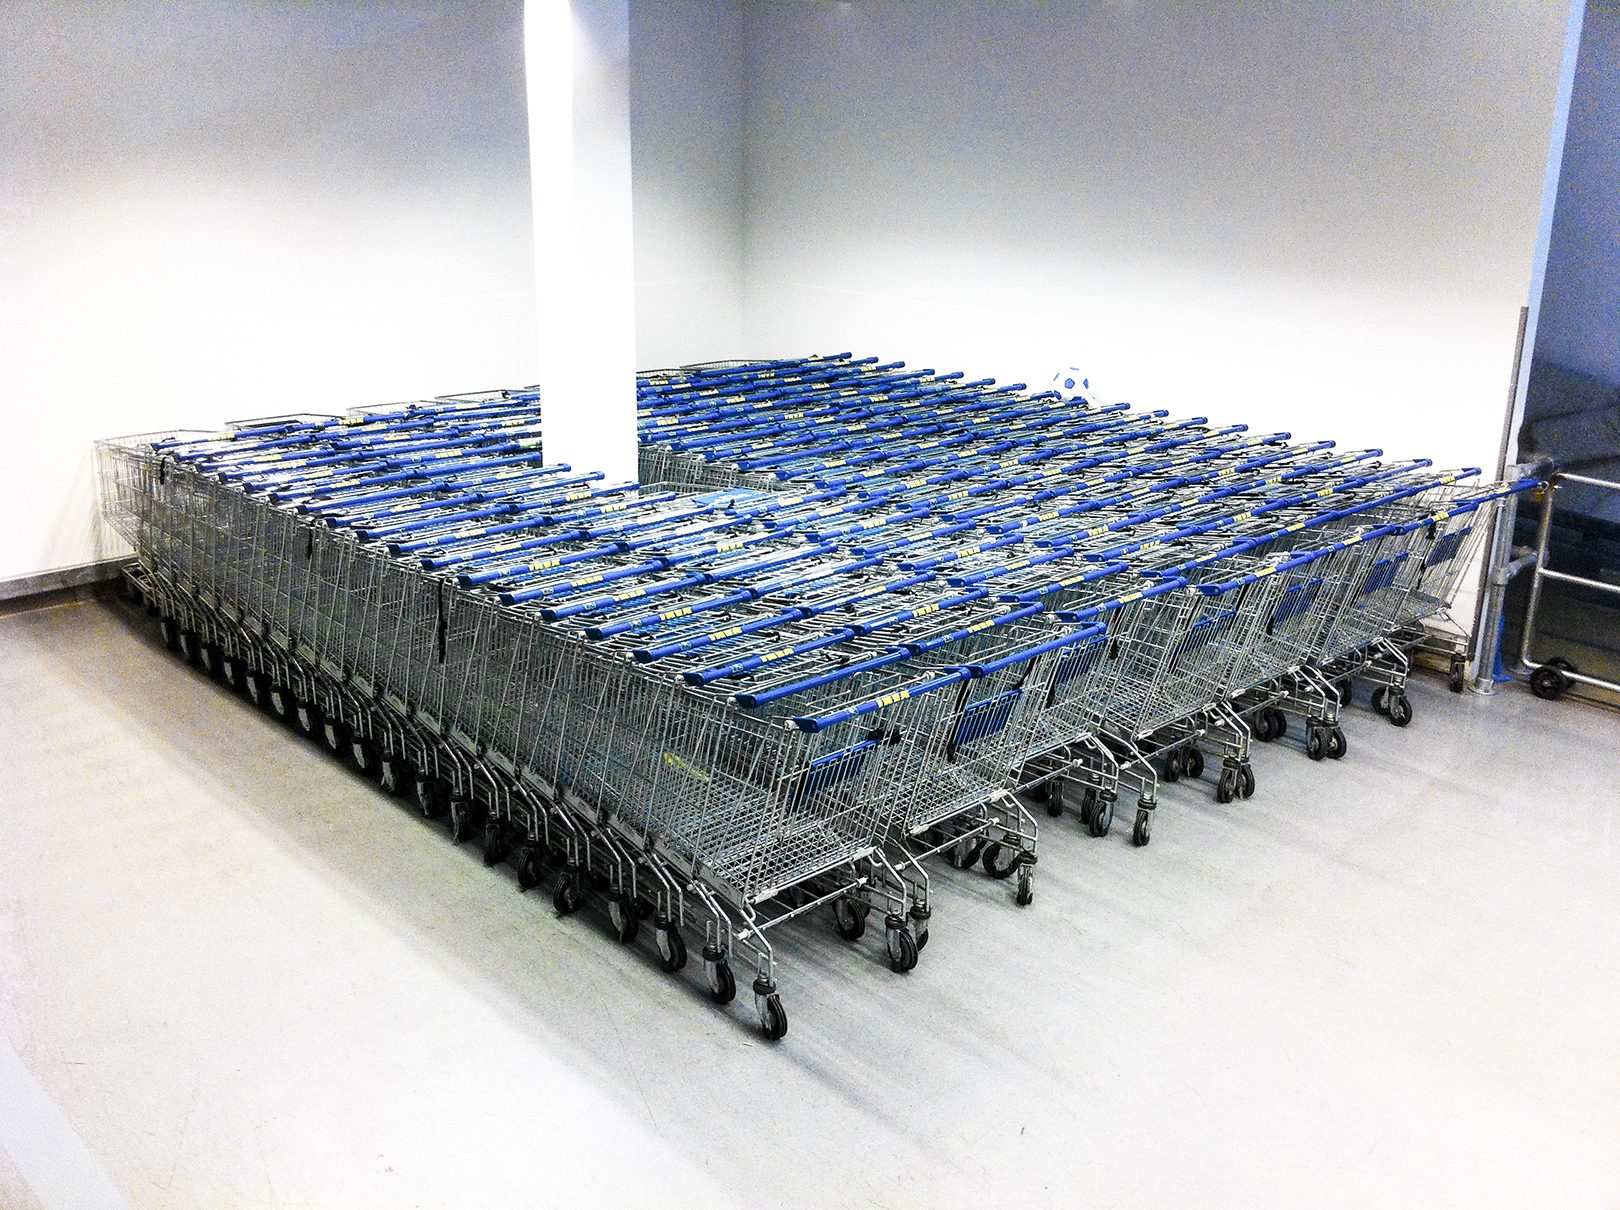 Diamond of Shopping Carts - 2011  In 2011 I started doing deliberate anonymous sculptures everywhere I went. Eventually such practice turned into a habit which I continued to record with my phone camera hoping to start an indirect conversation with stranger passerby. In 2013 I realized I was consistent with that idea and that it could turn into a real project, which is now SYMBOLS, both the project and the book.